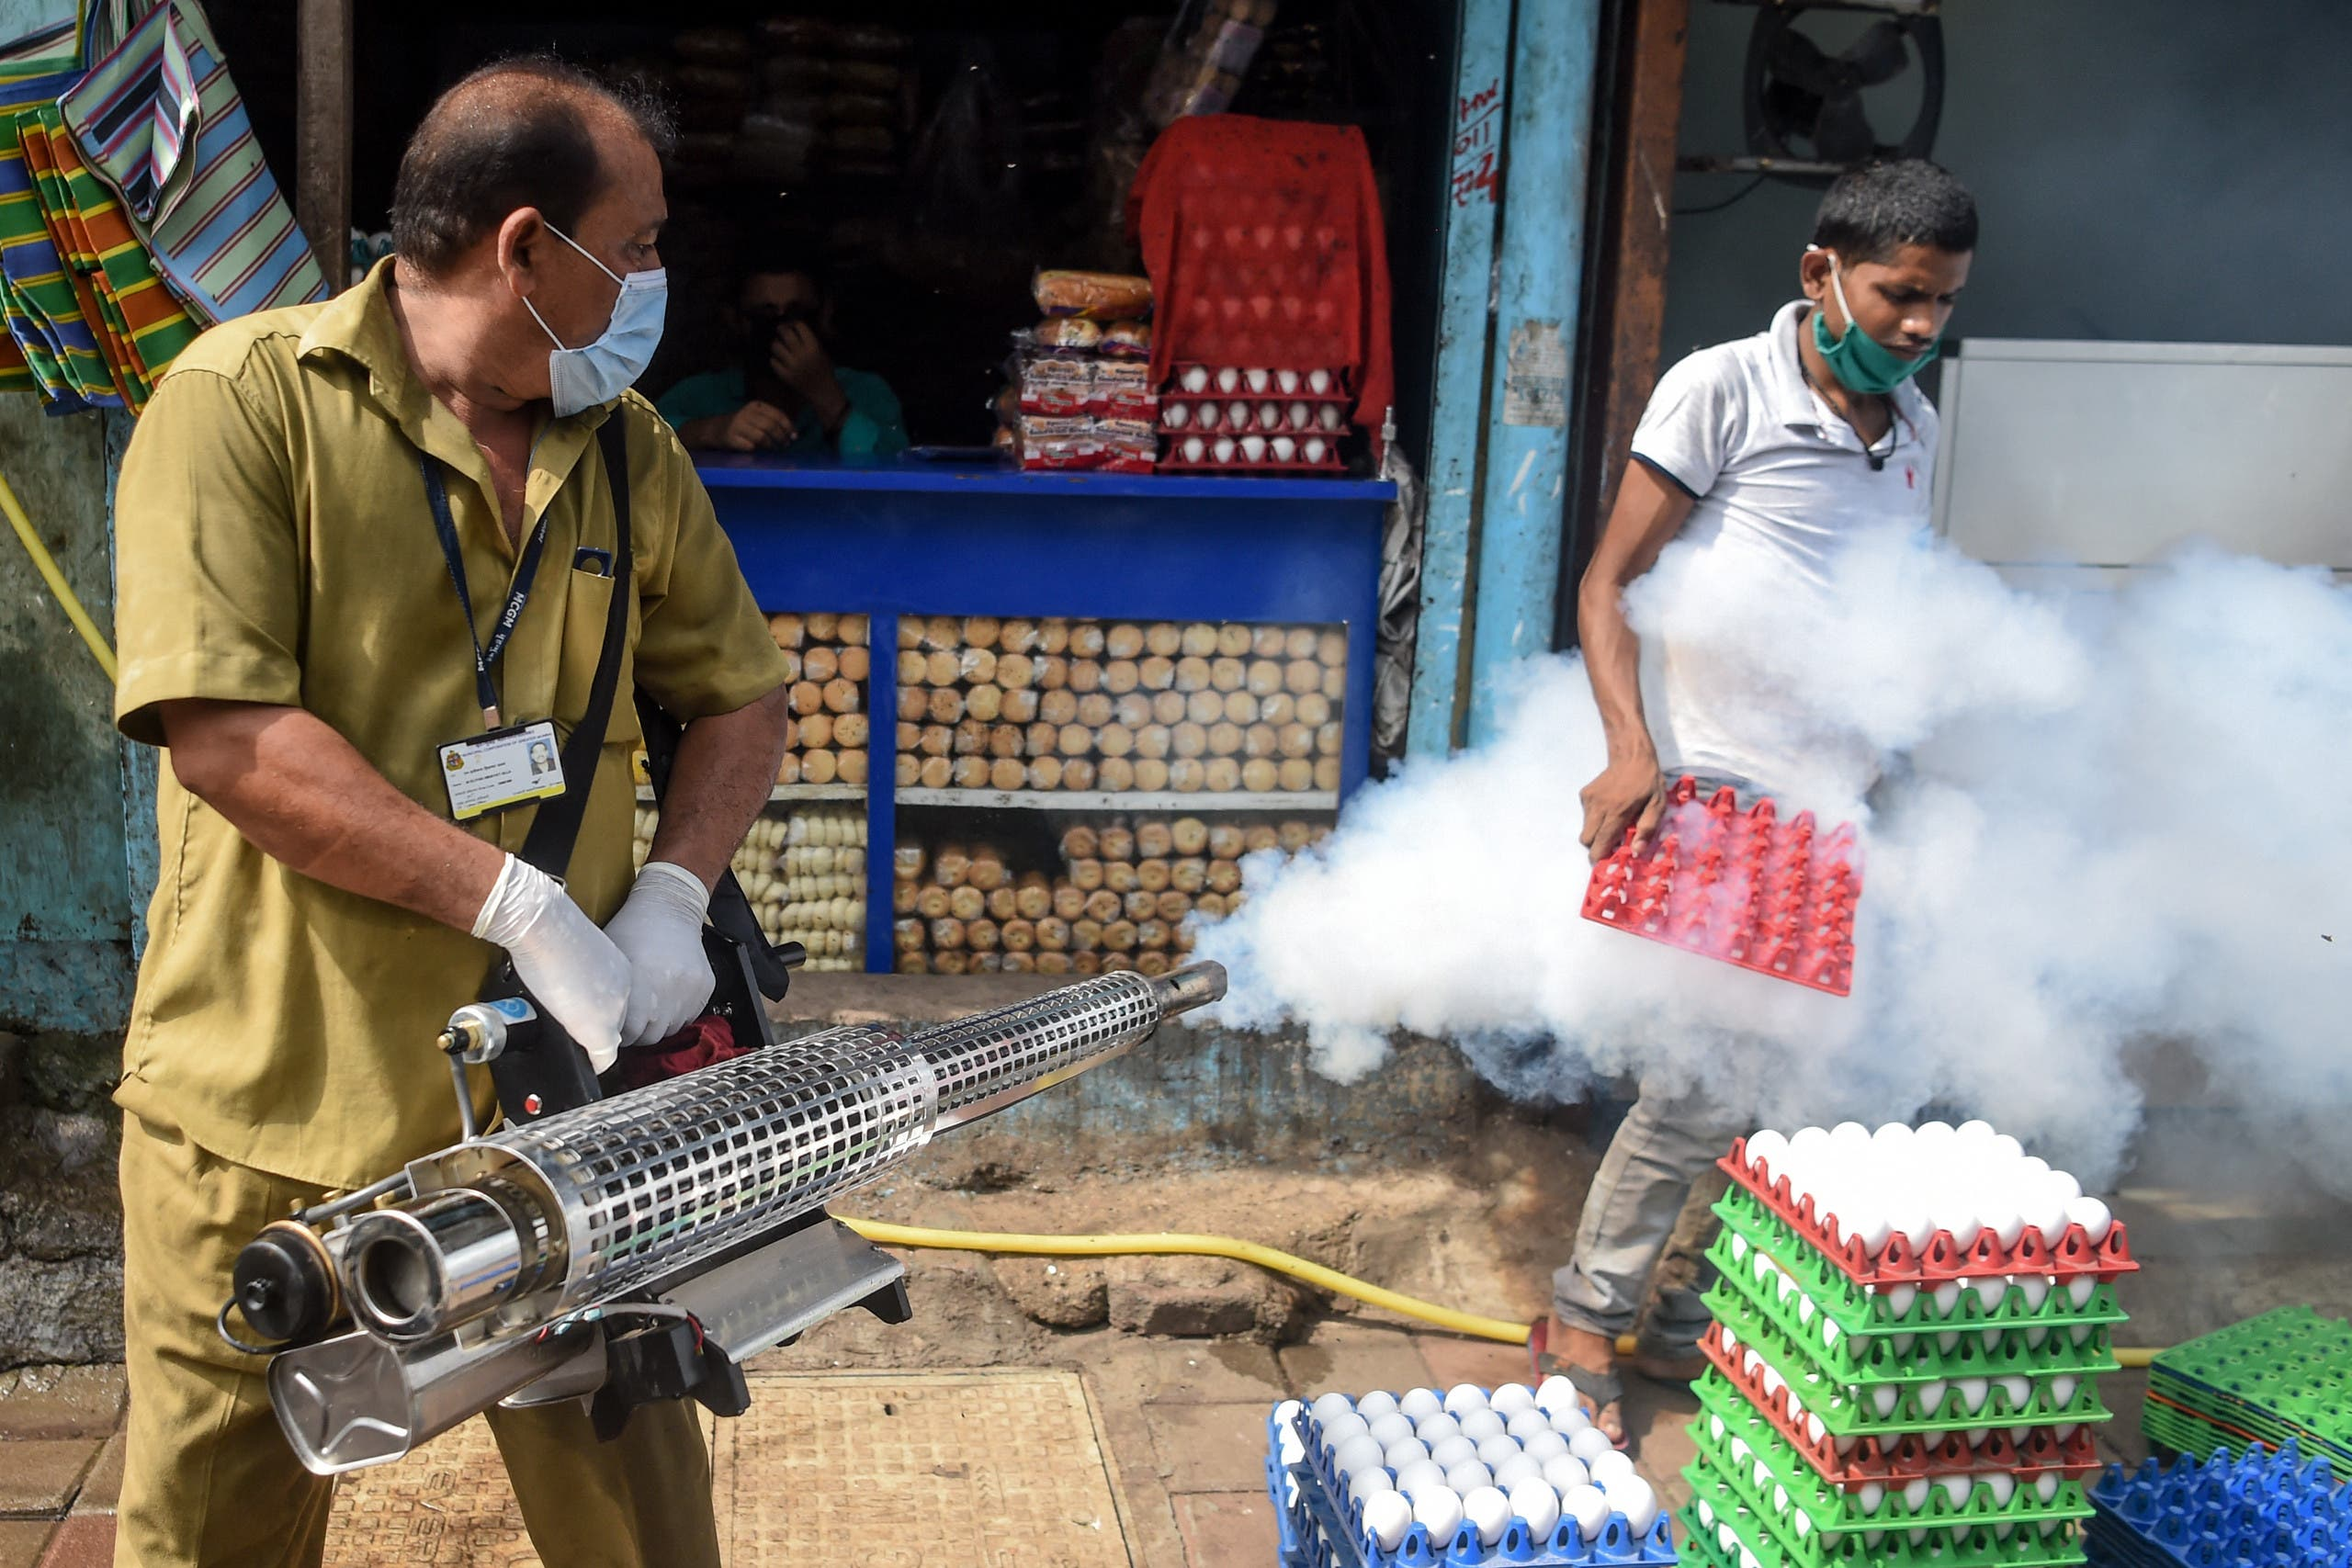 A civic worker fumigates a slum area as a preventive measure against malaria and dengue ahead of monsoon in Mumbai on June 12, 2020. (File photo: AFP)